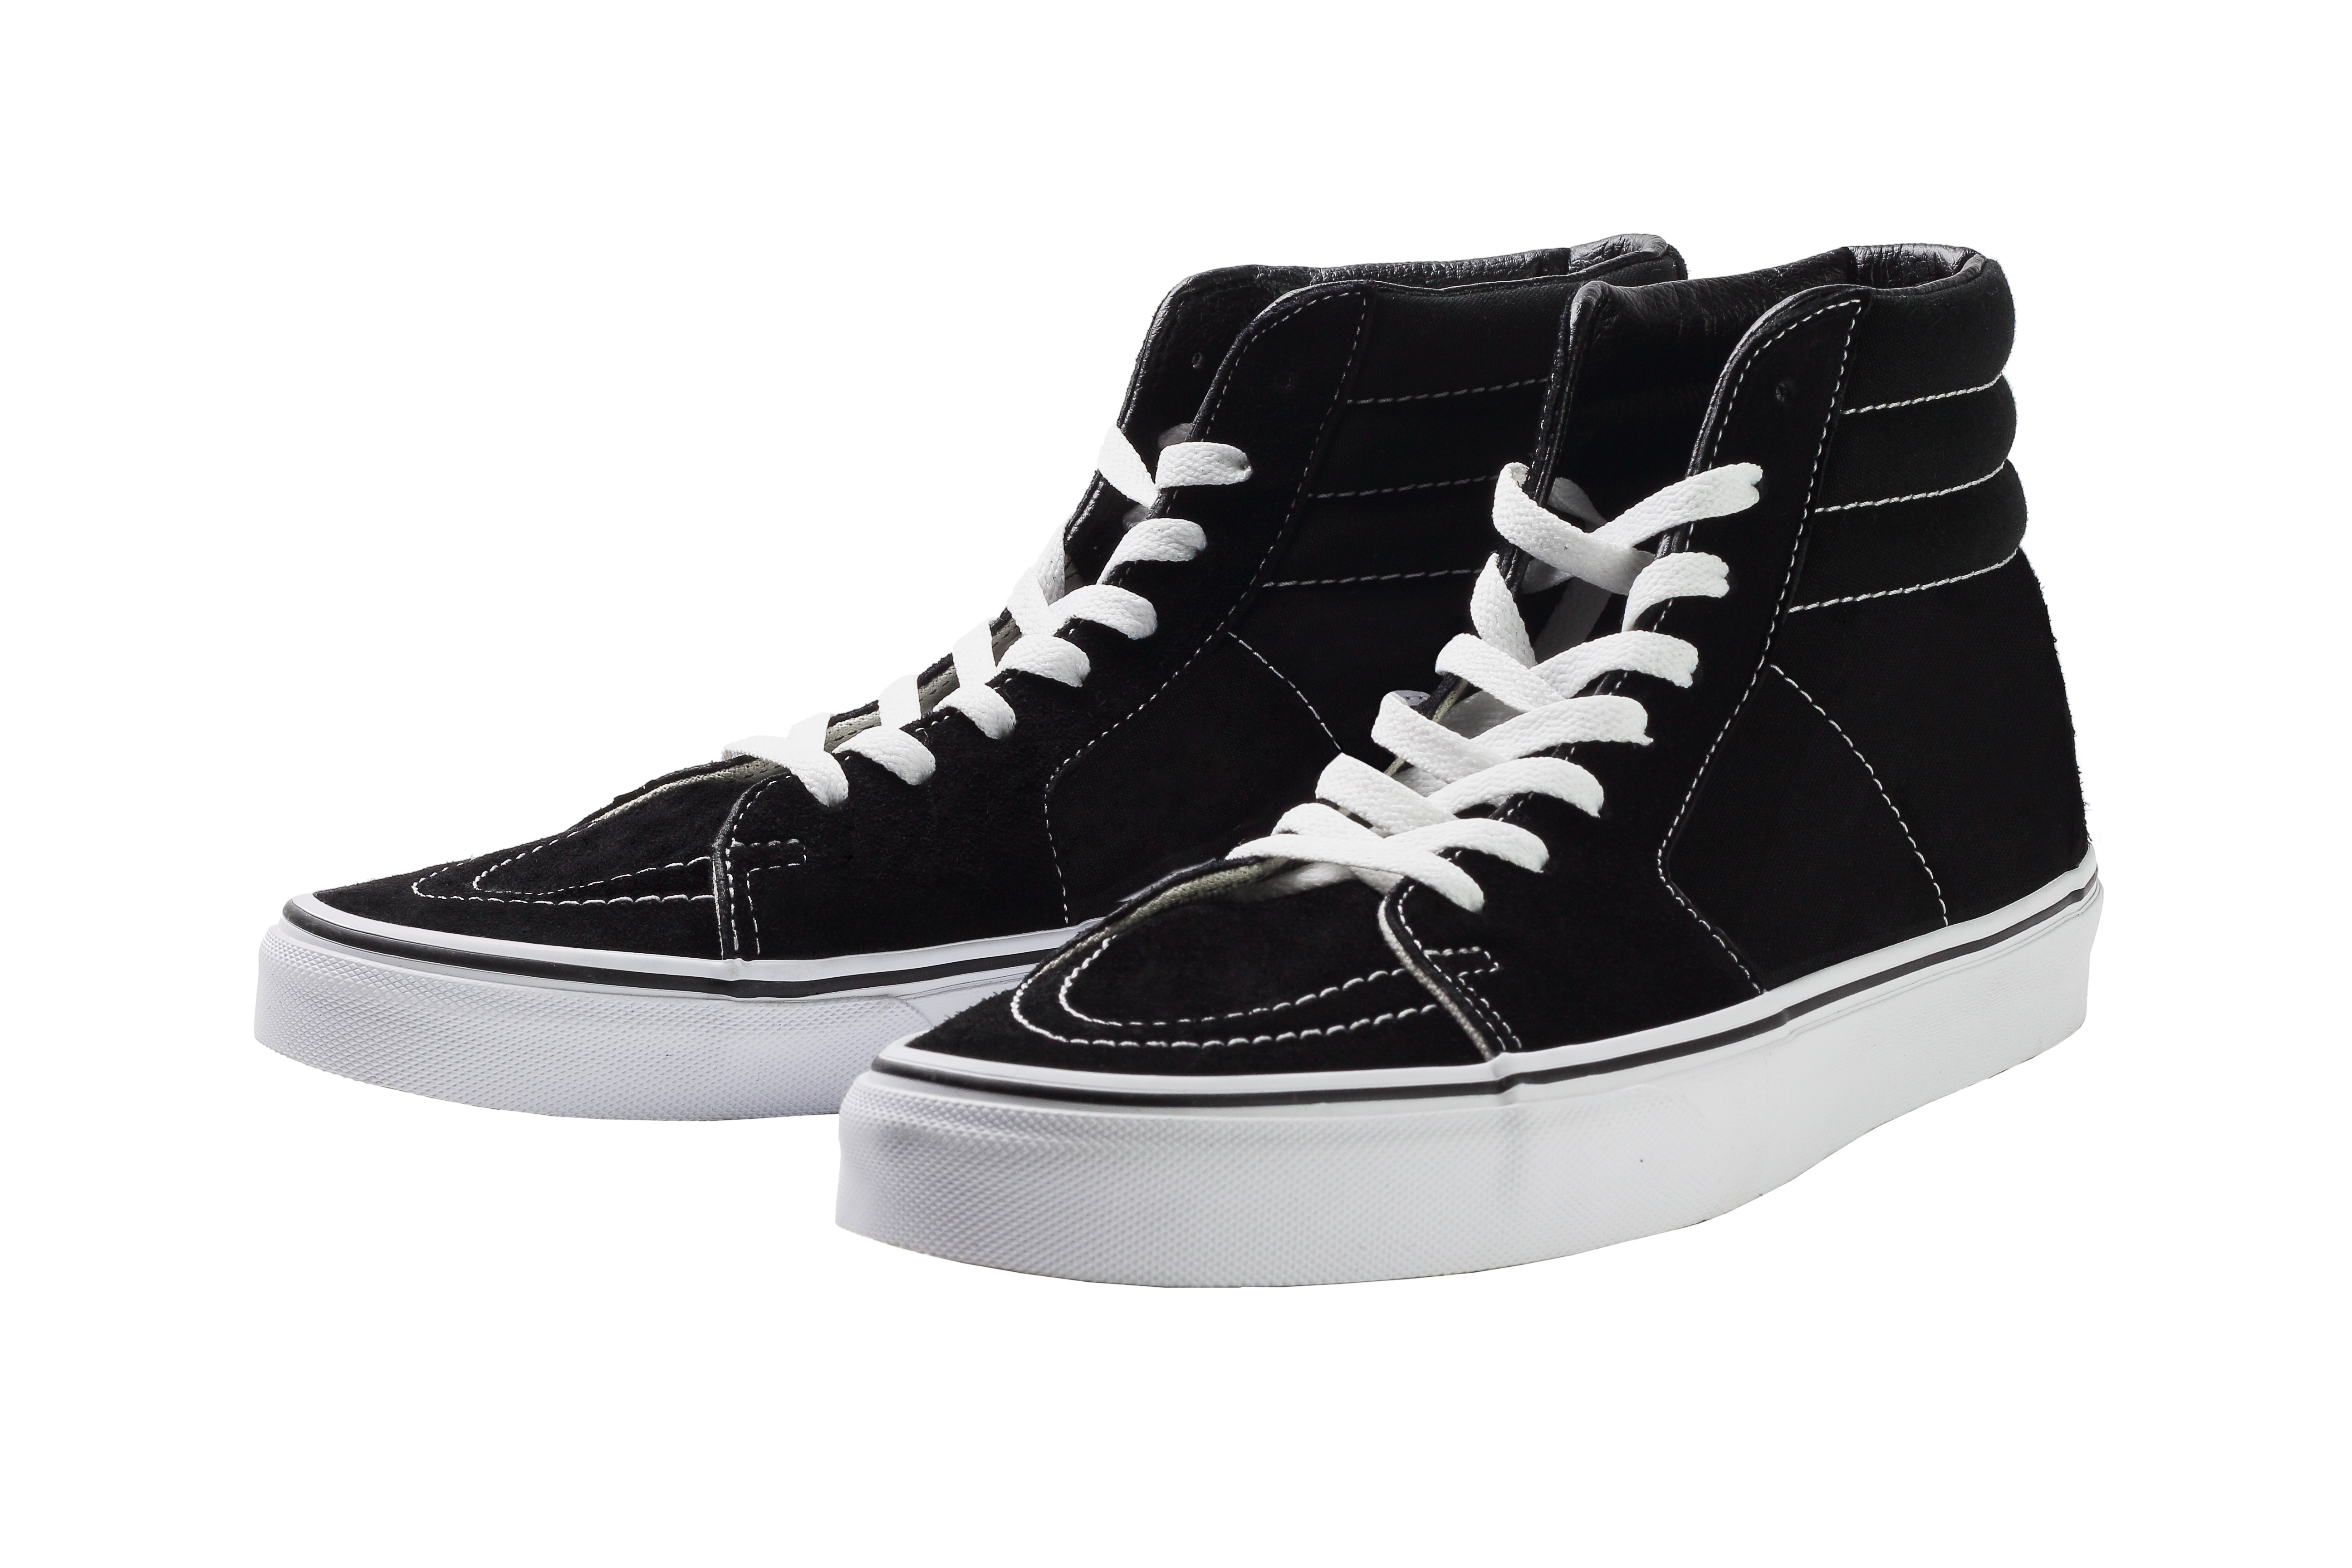 Black High Top Canvas Sneaker on White Background